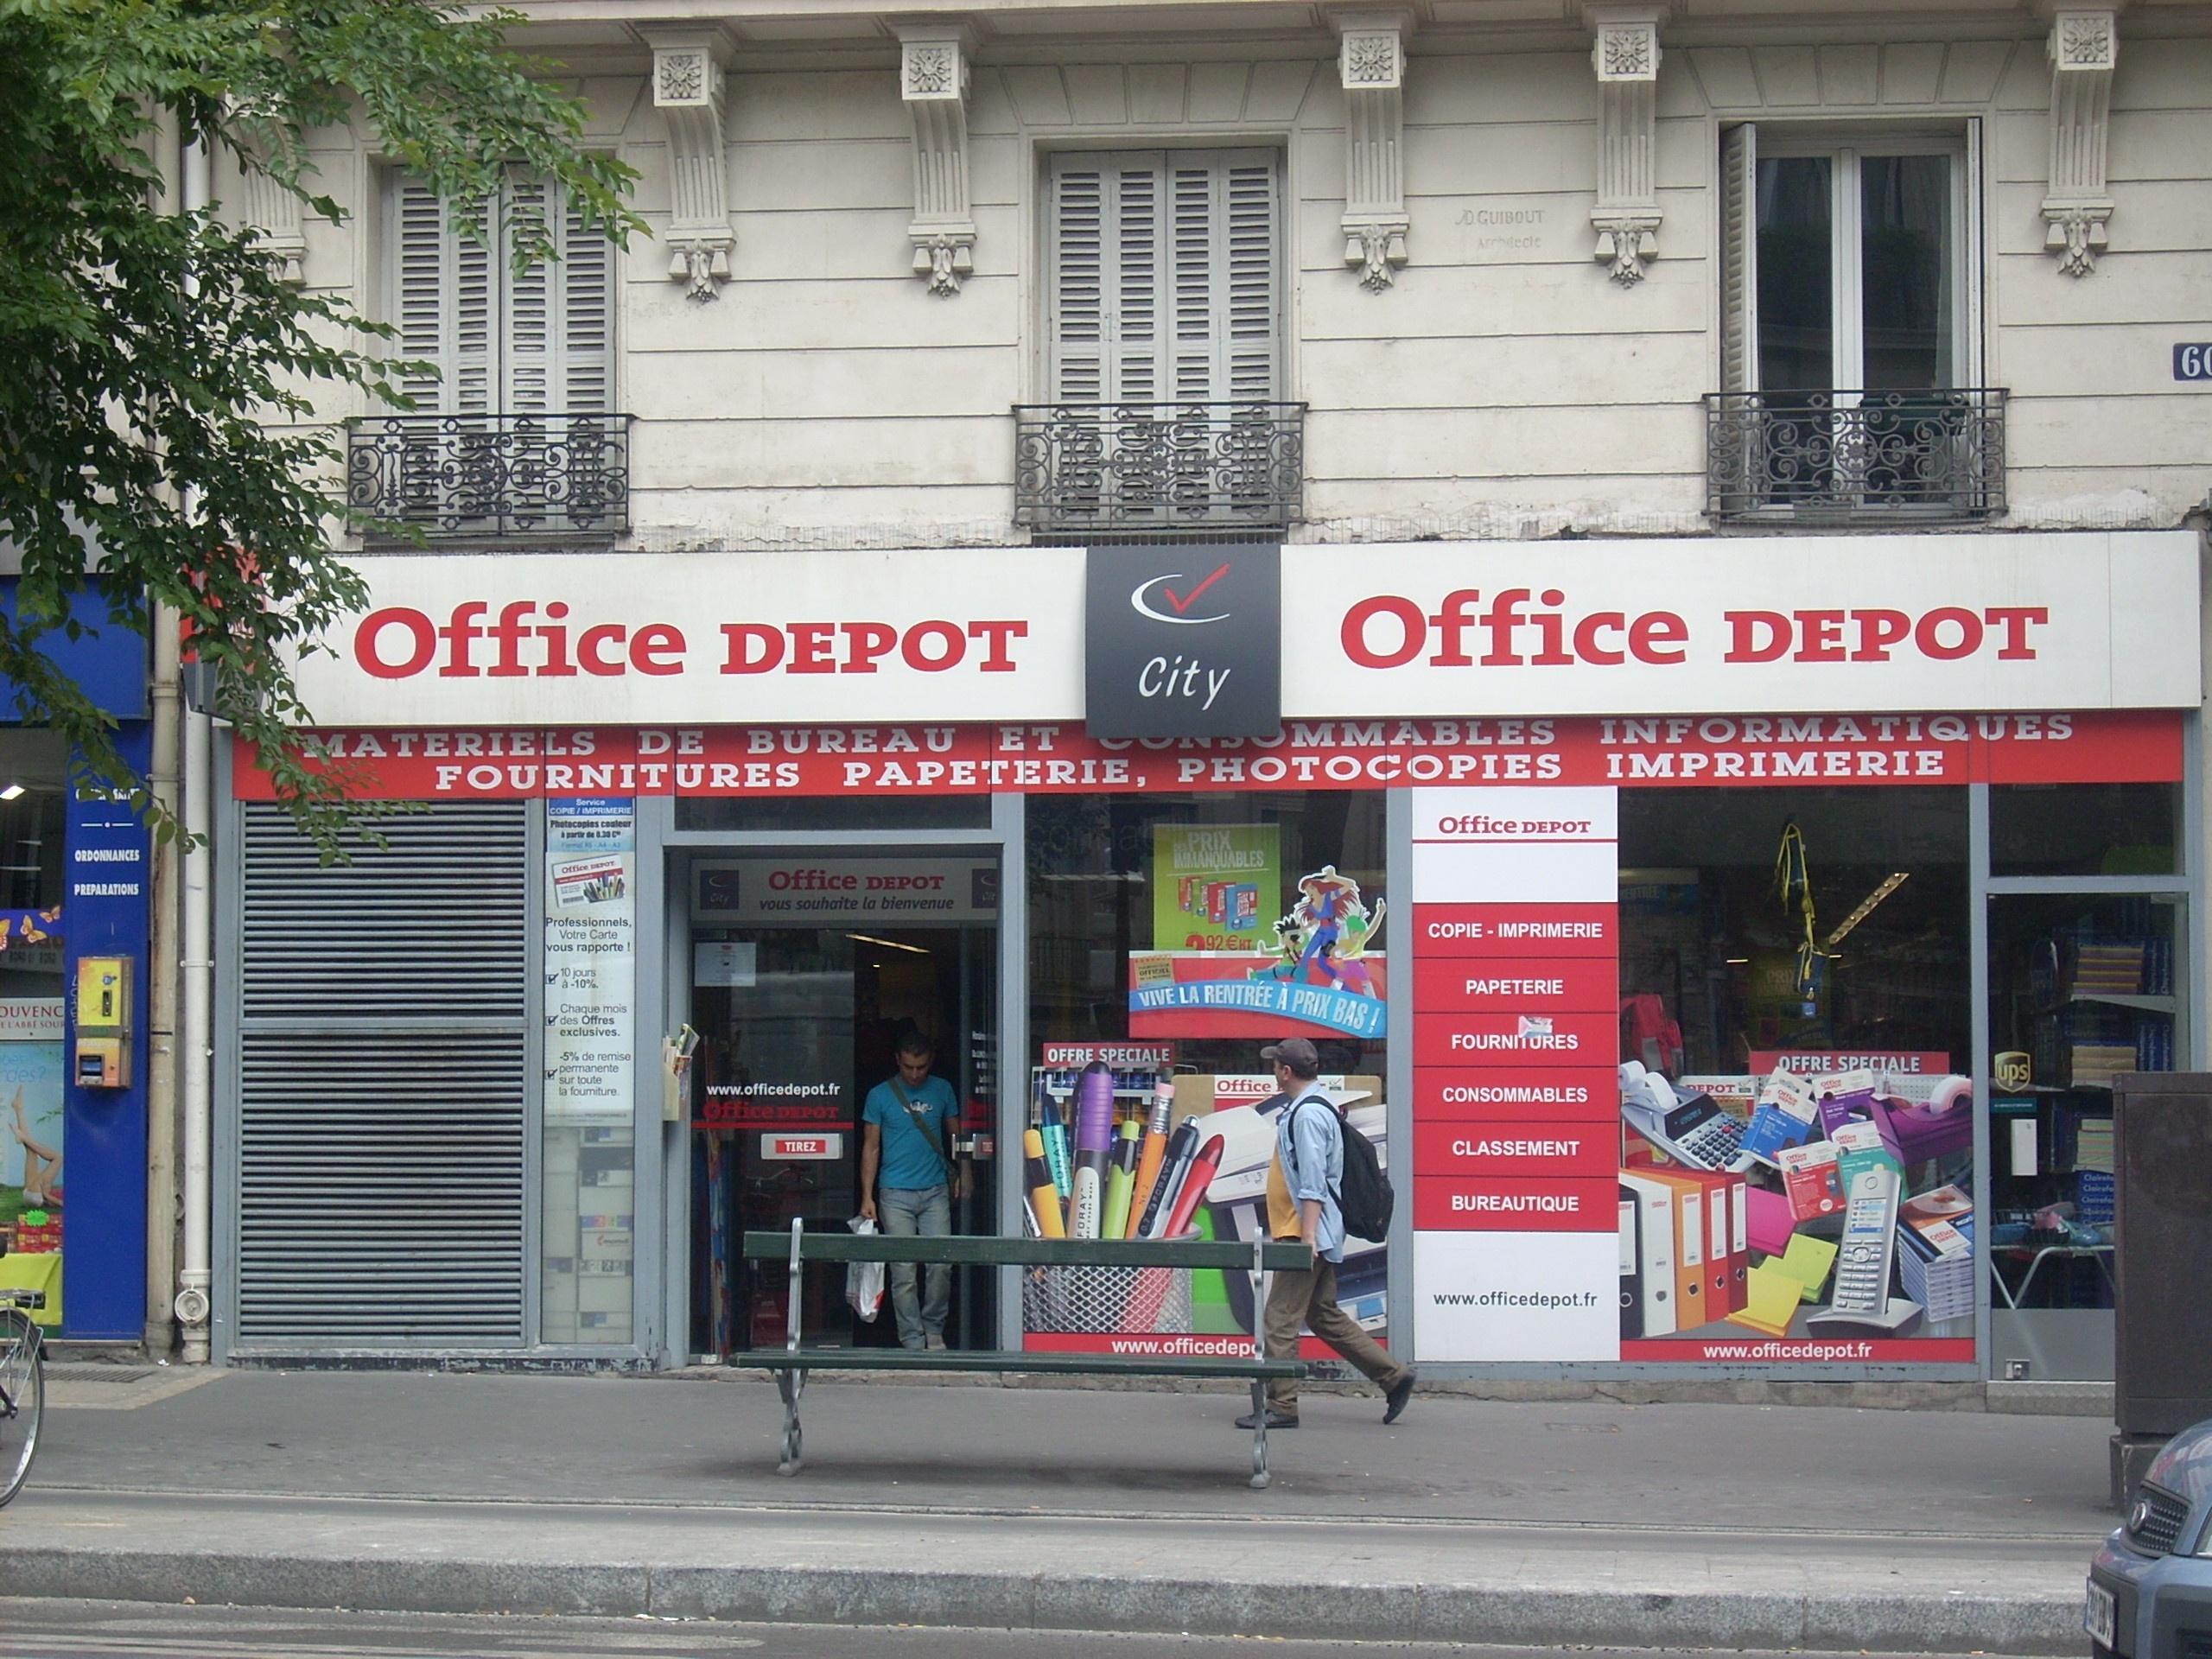 Fournitures architecte paris - Bureau de change paris 7 ...